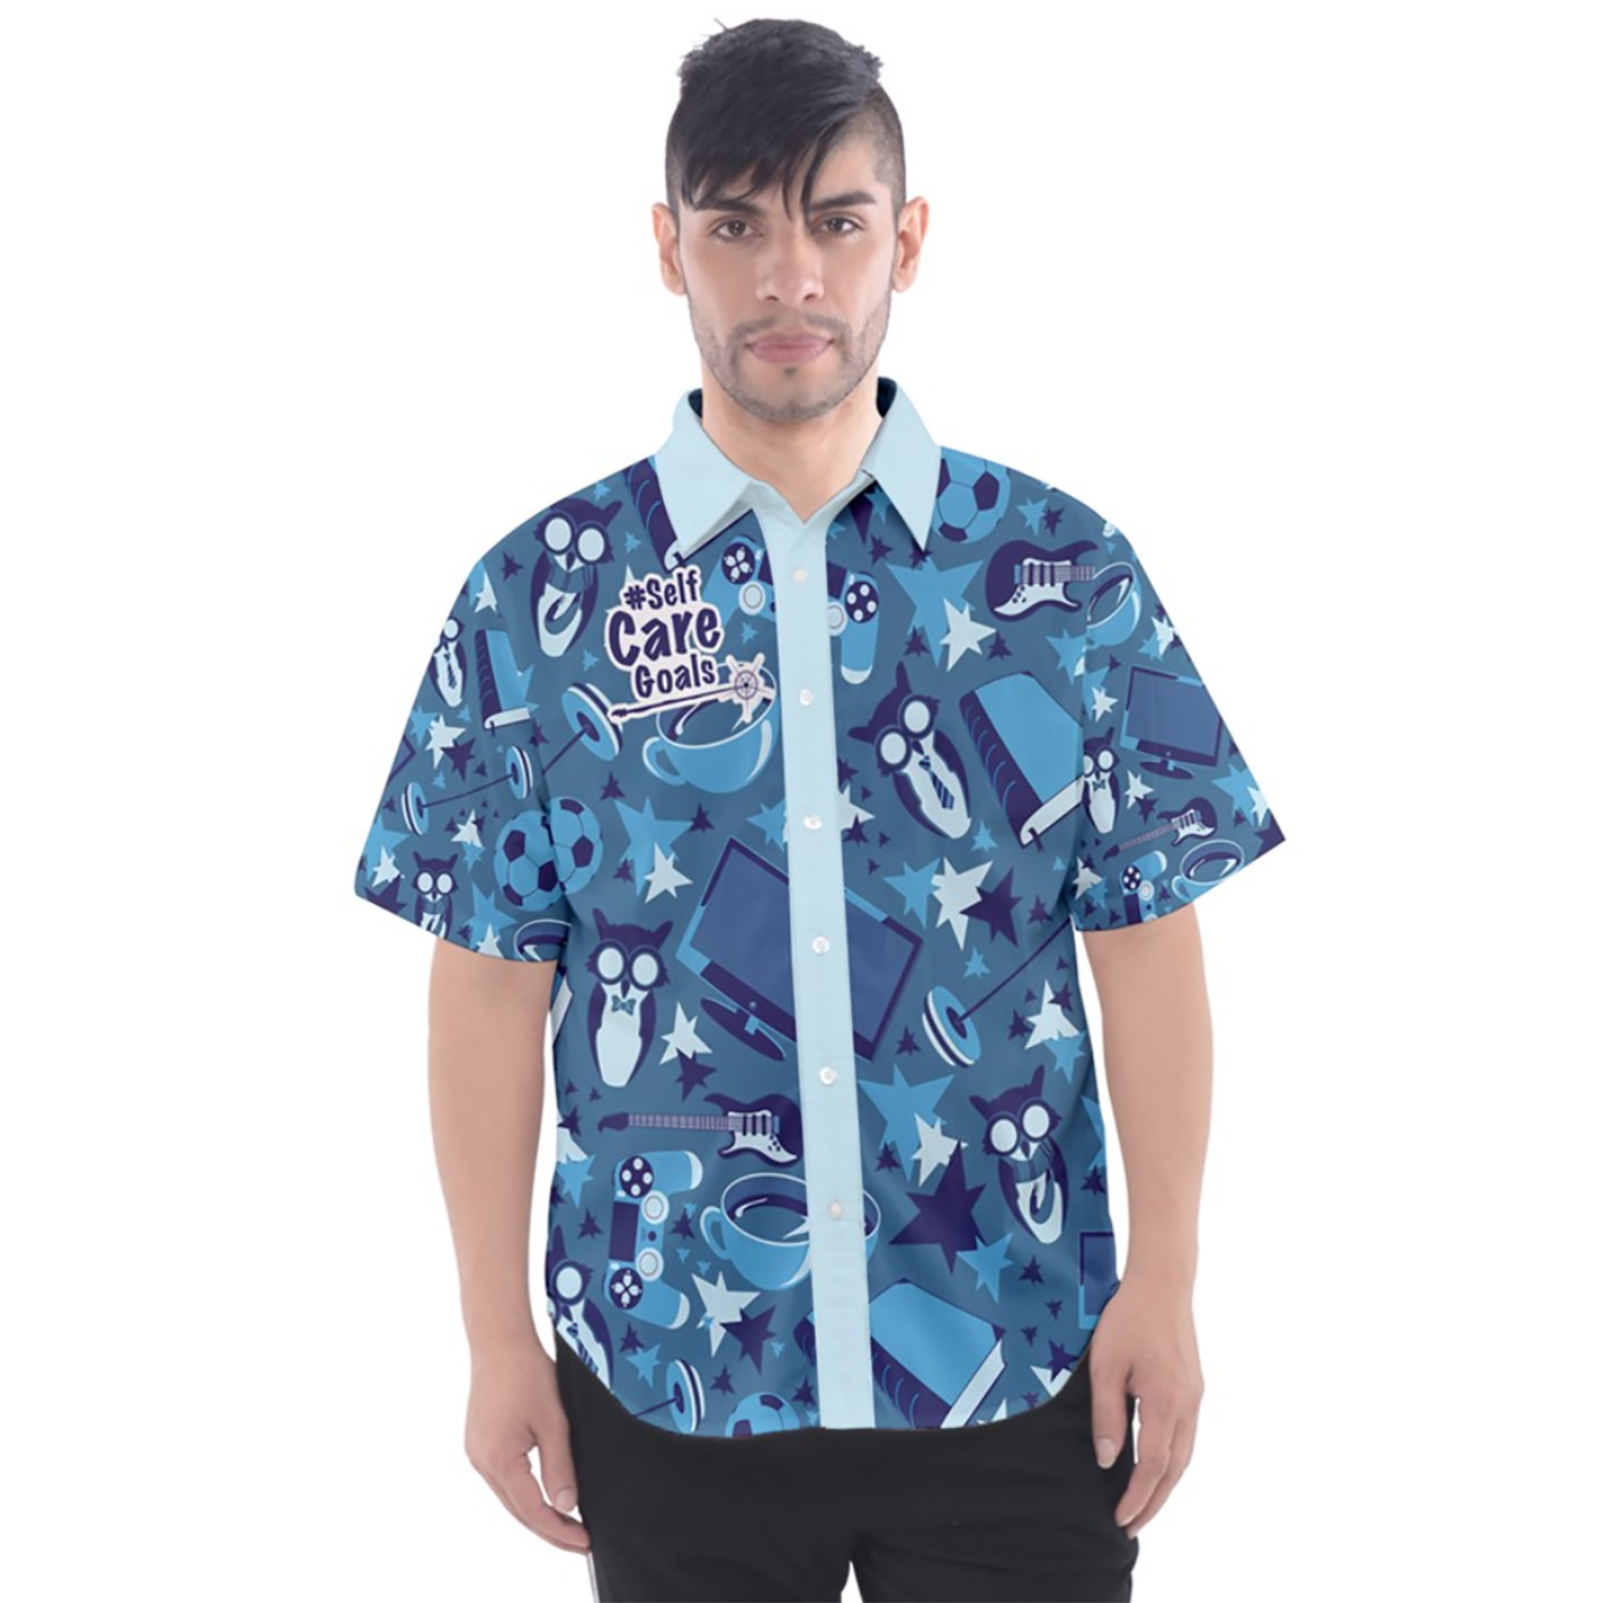 Self-Care Men's Patterned Button Up Short Sleeve Shirt (Blue)